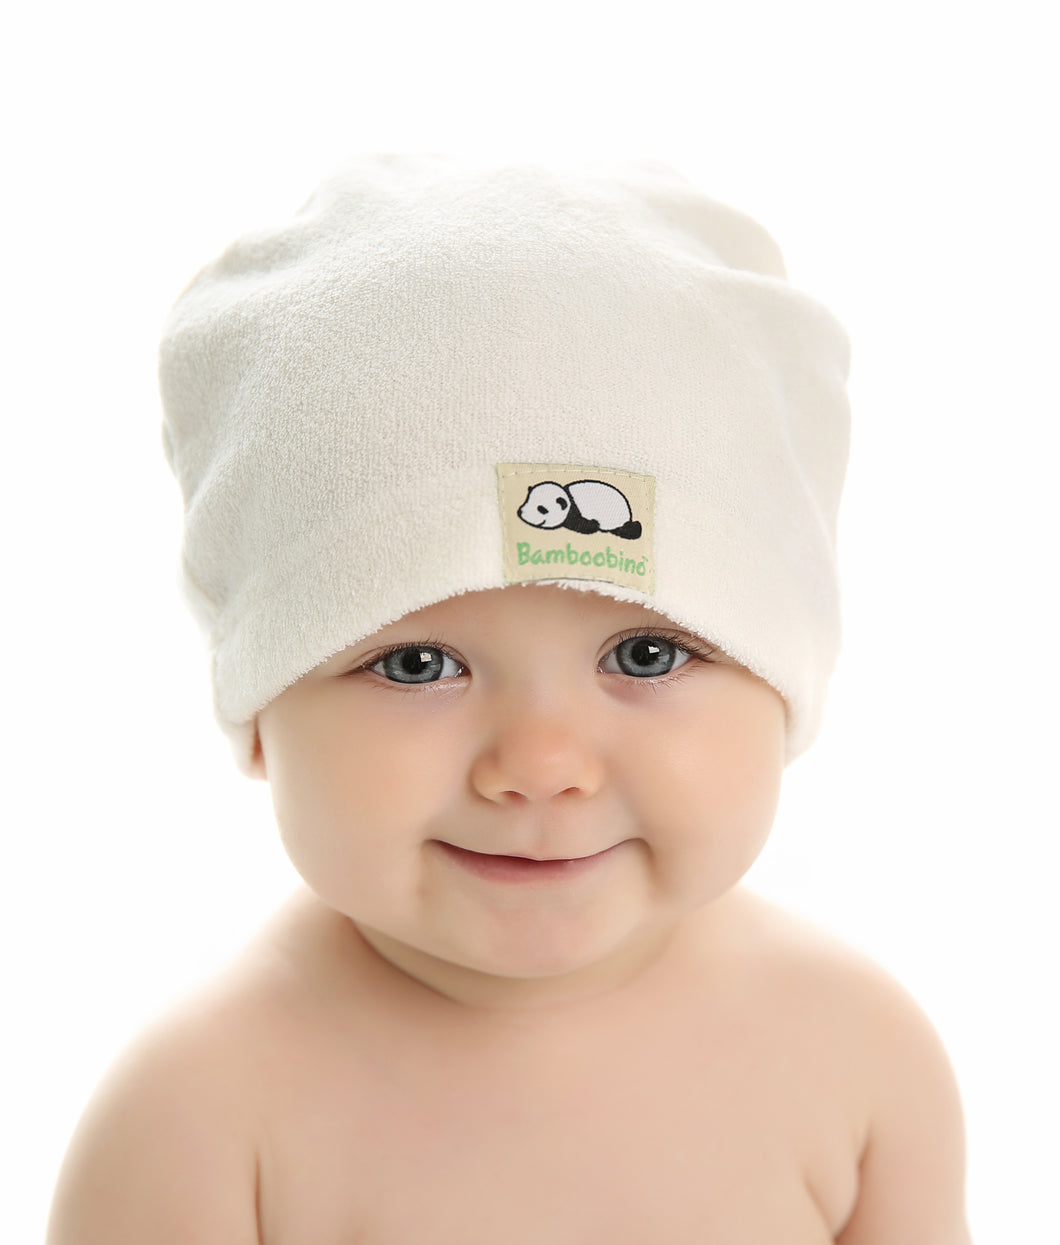 After-Bath Hat for Baby